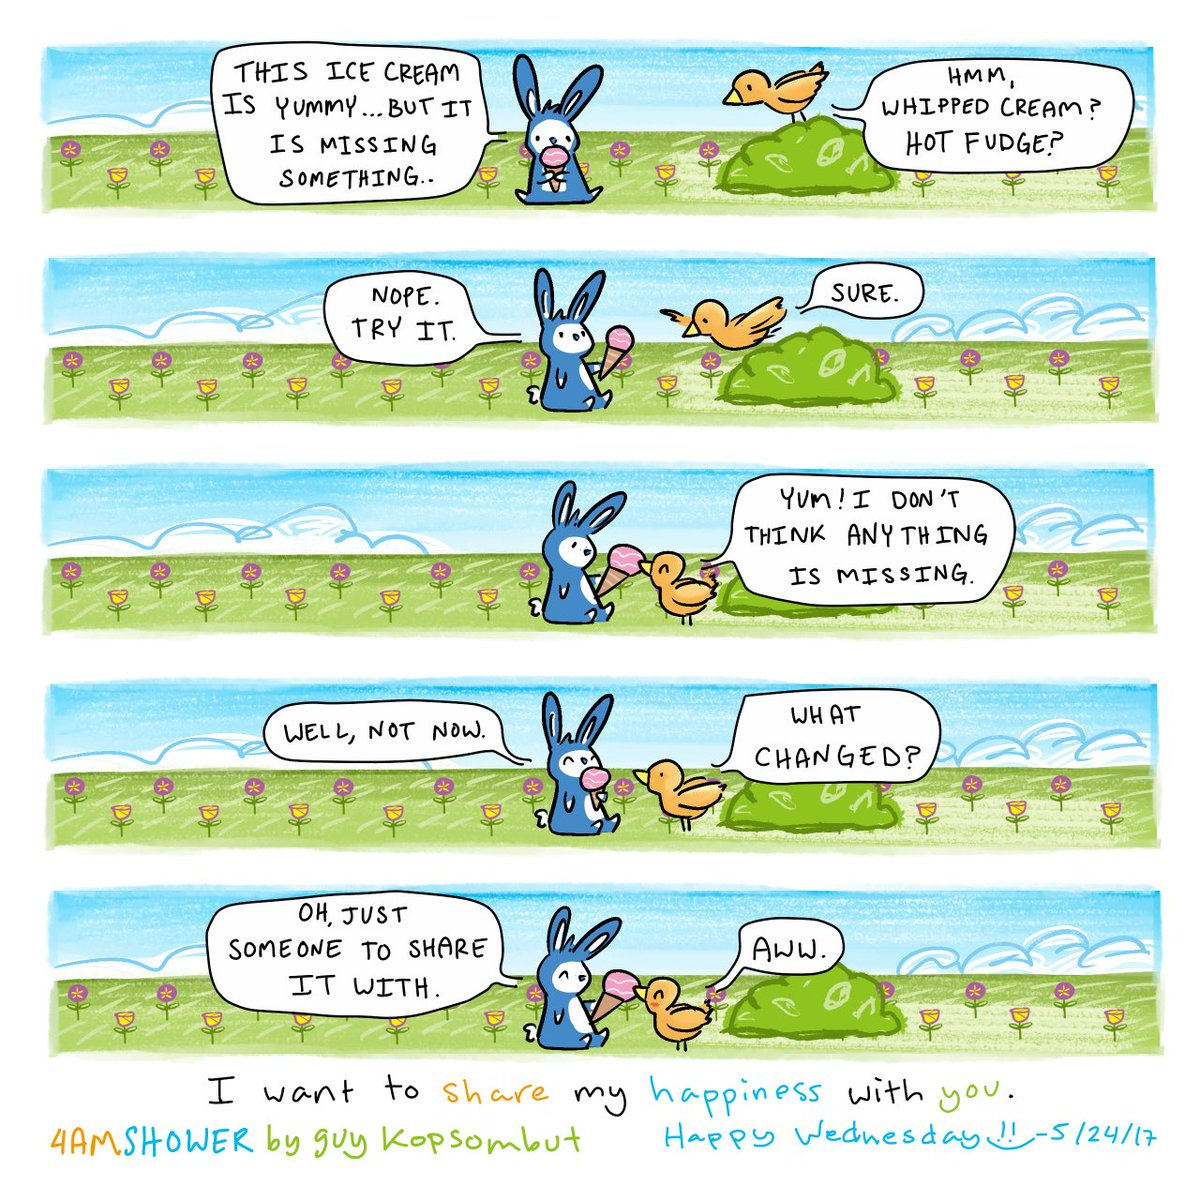 The missing piece. #happy #cute #art #sketch #sketchaday #illustrations #doodle #aww #friends #funny #memes #depression #comics #love #scbwi<br>http://pic.twitter.com/P7Ty0wUchK